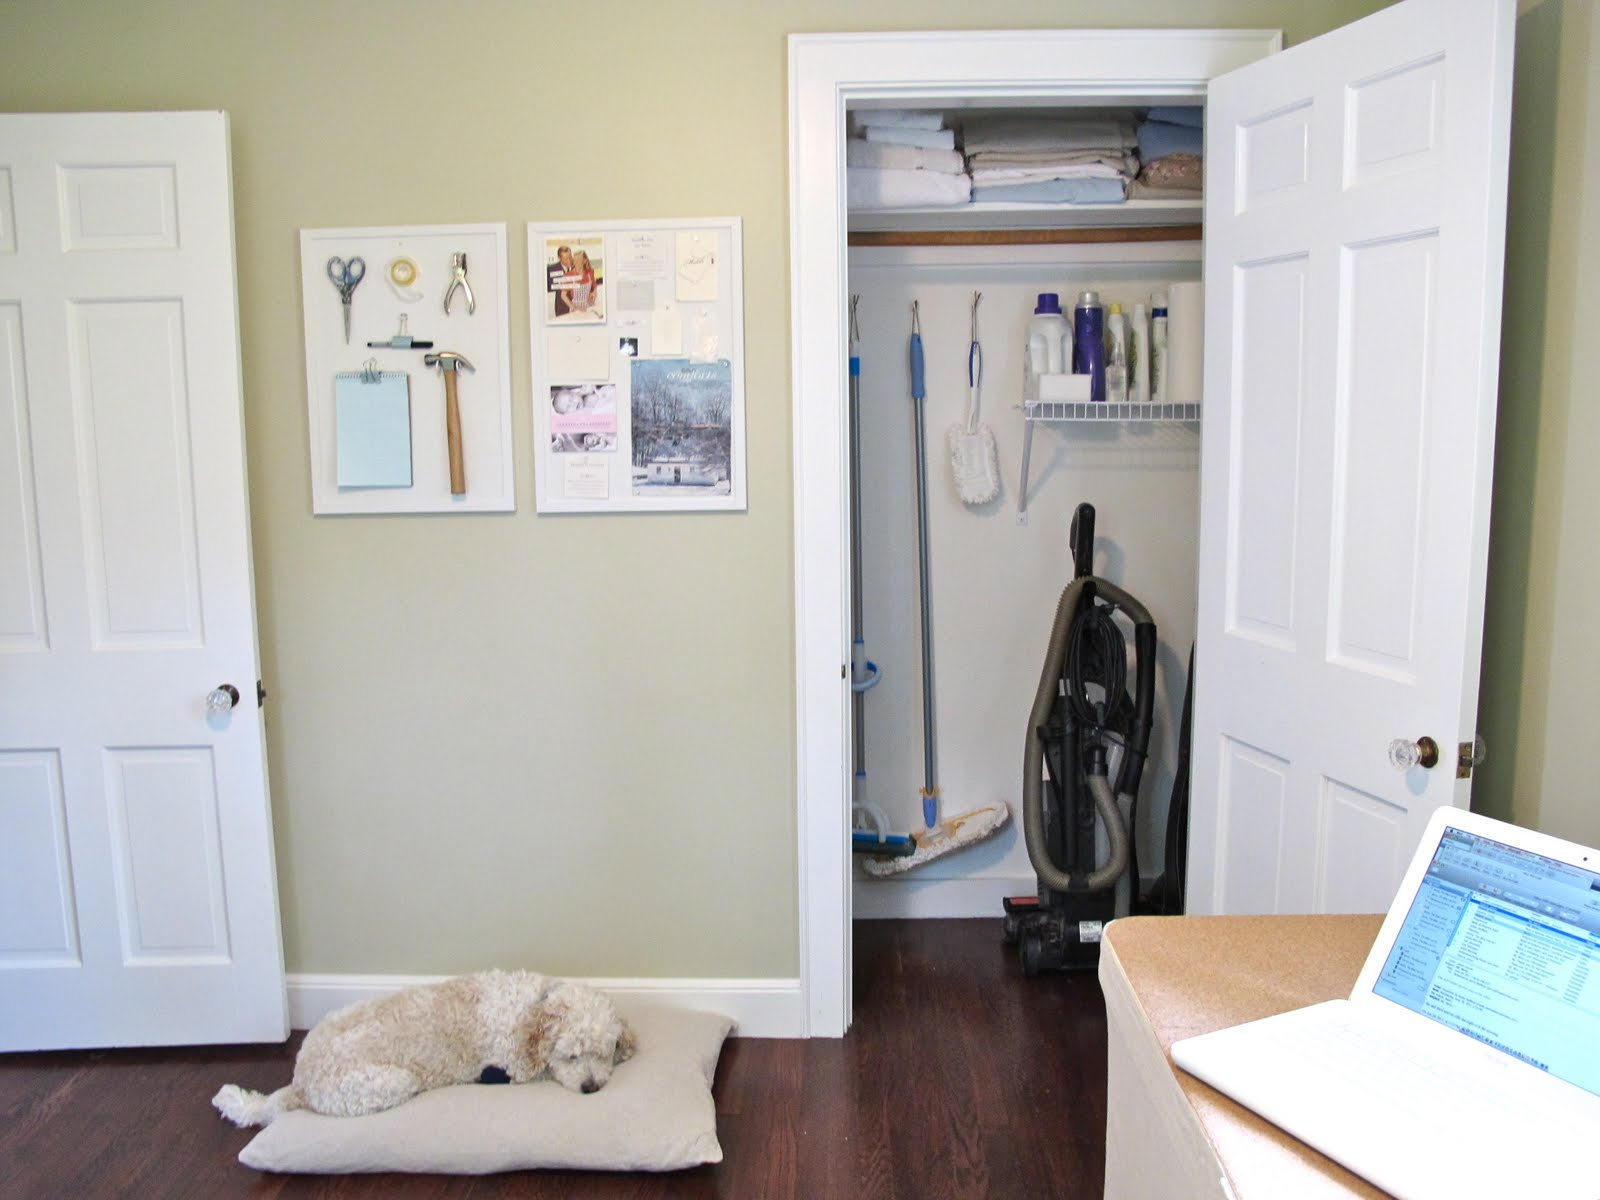 Jenny Steffens Hobick: Work Room Office Utility Laundry Room ... on redo bathrooms on a budget, diy bedroom shelf ideas, diy striped wall bedroom, diy bedroom painting ideas, diy guest bedroom ideas, beautiful bedrooms on a budget, diy bedroom wall decorating ideas, diy chalk paint bedroom furniture, diy dining room makeover on budget, pinterest home decorating on a budget, romantic bedrooms on a budget,